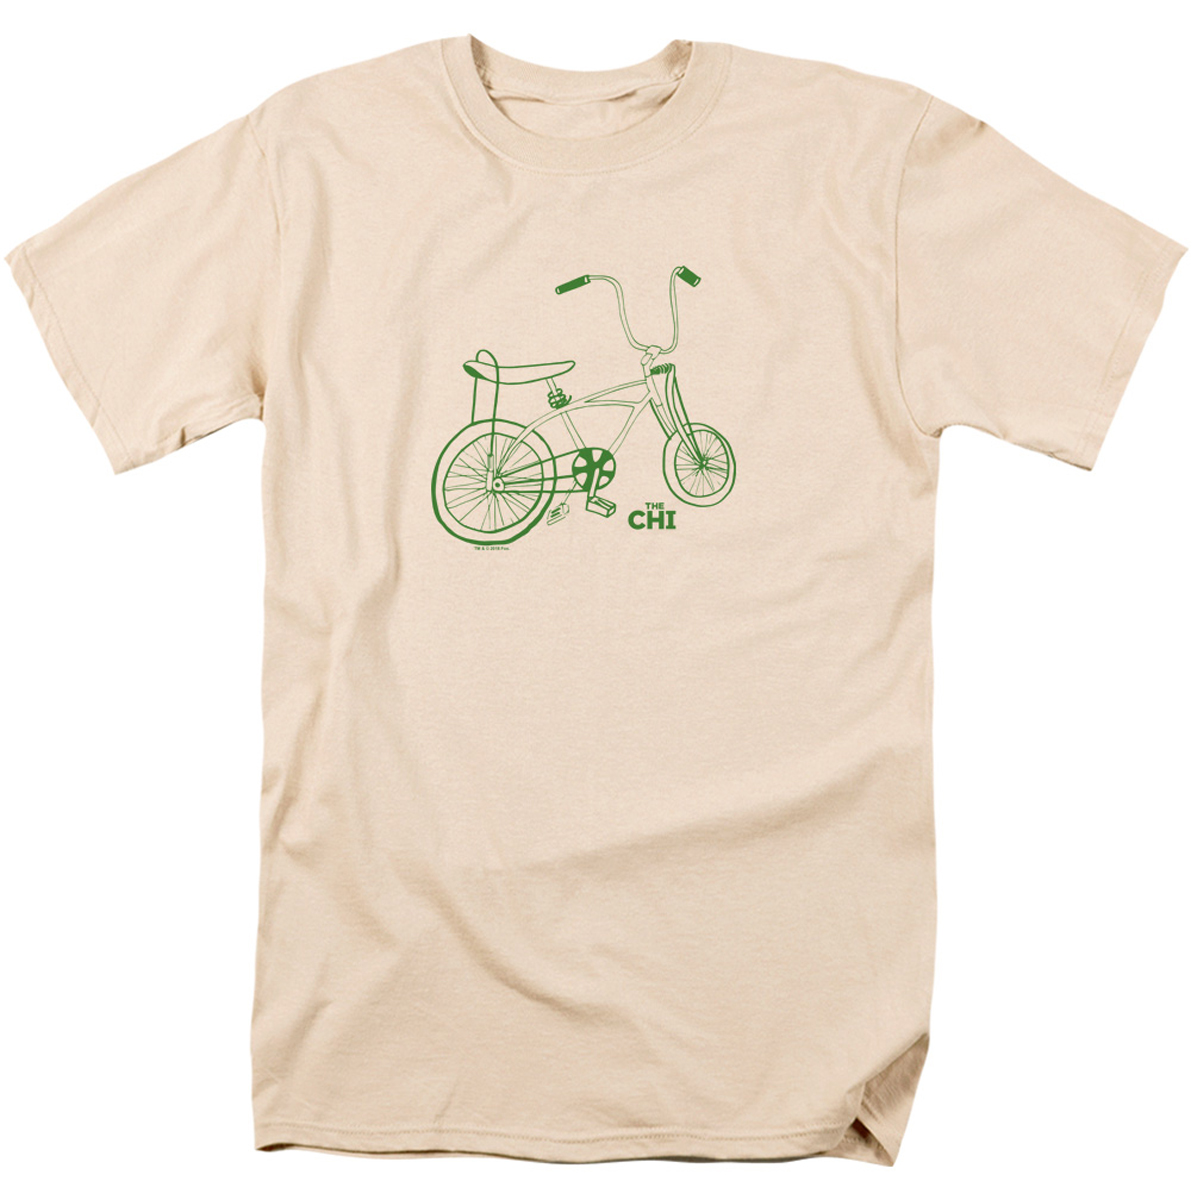 The Chi Bicycle T-Shirt (Cream)